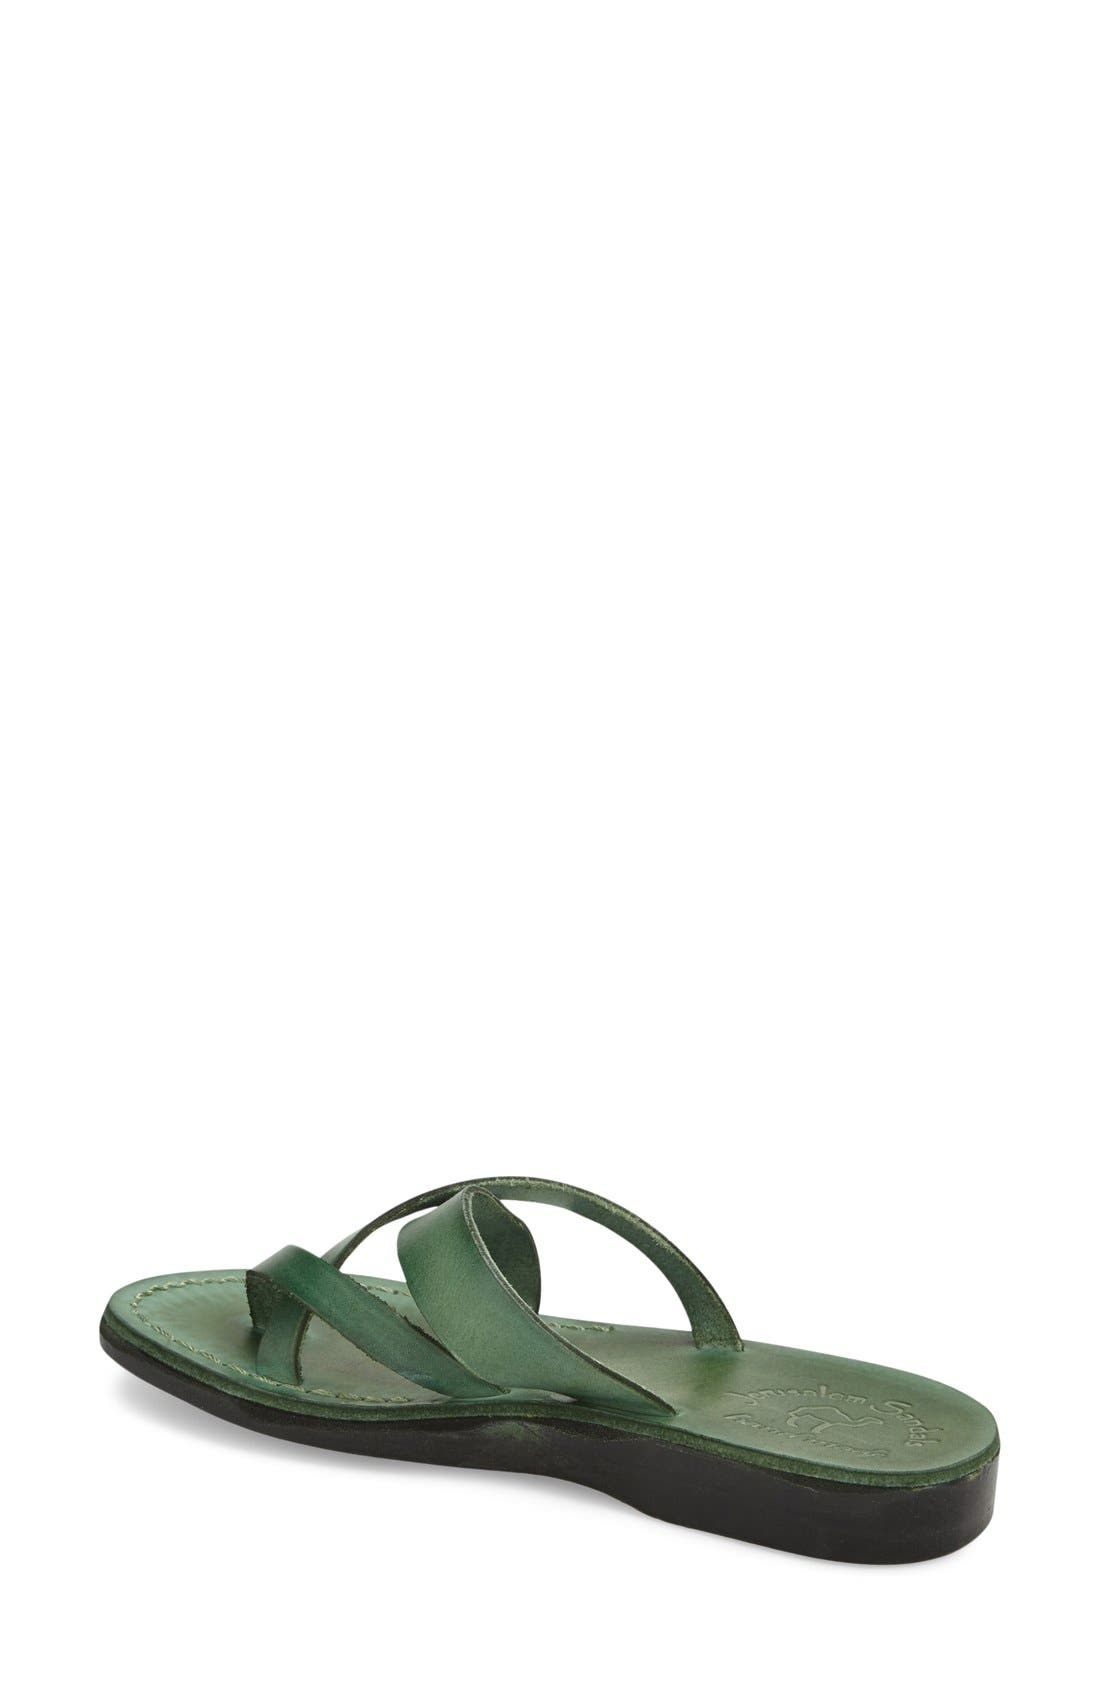 Alternate Image 2  - Jerusalem Sandals 'Abigail' Strappy Slide Sandal (Women)